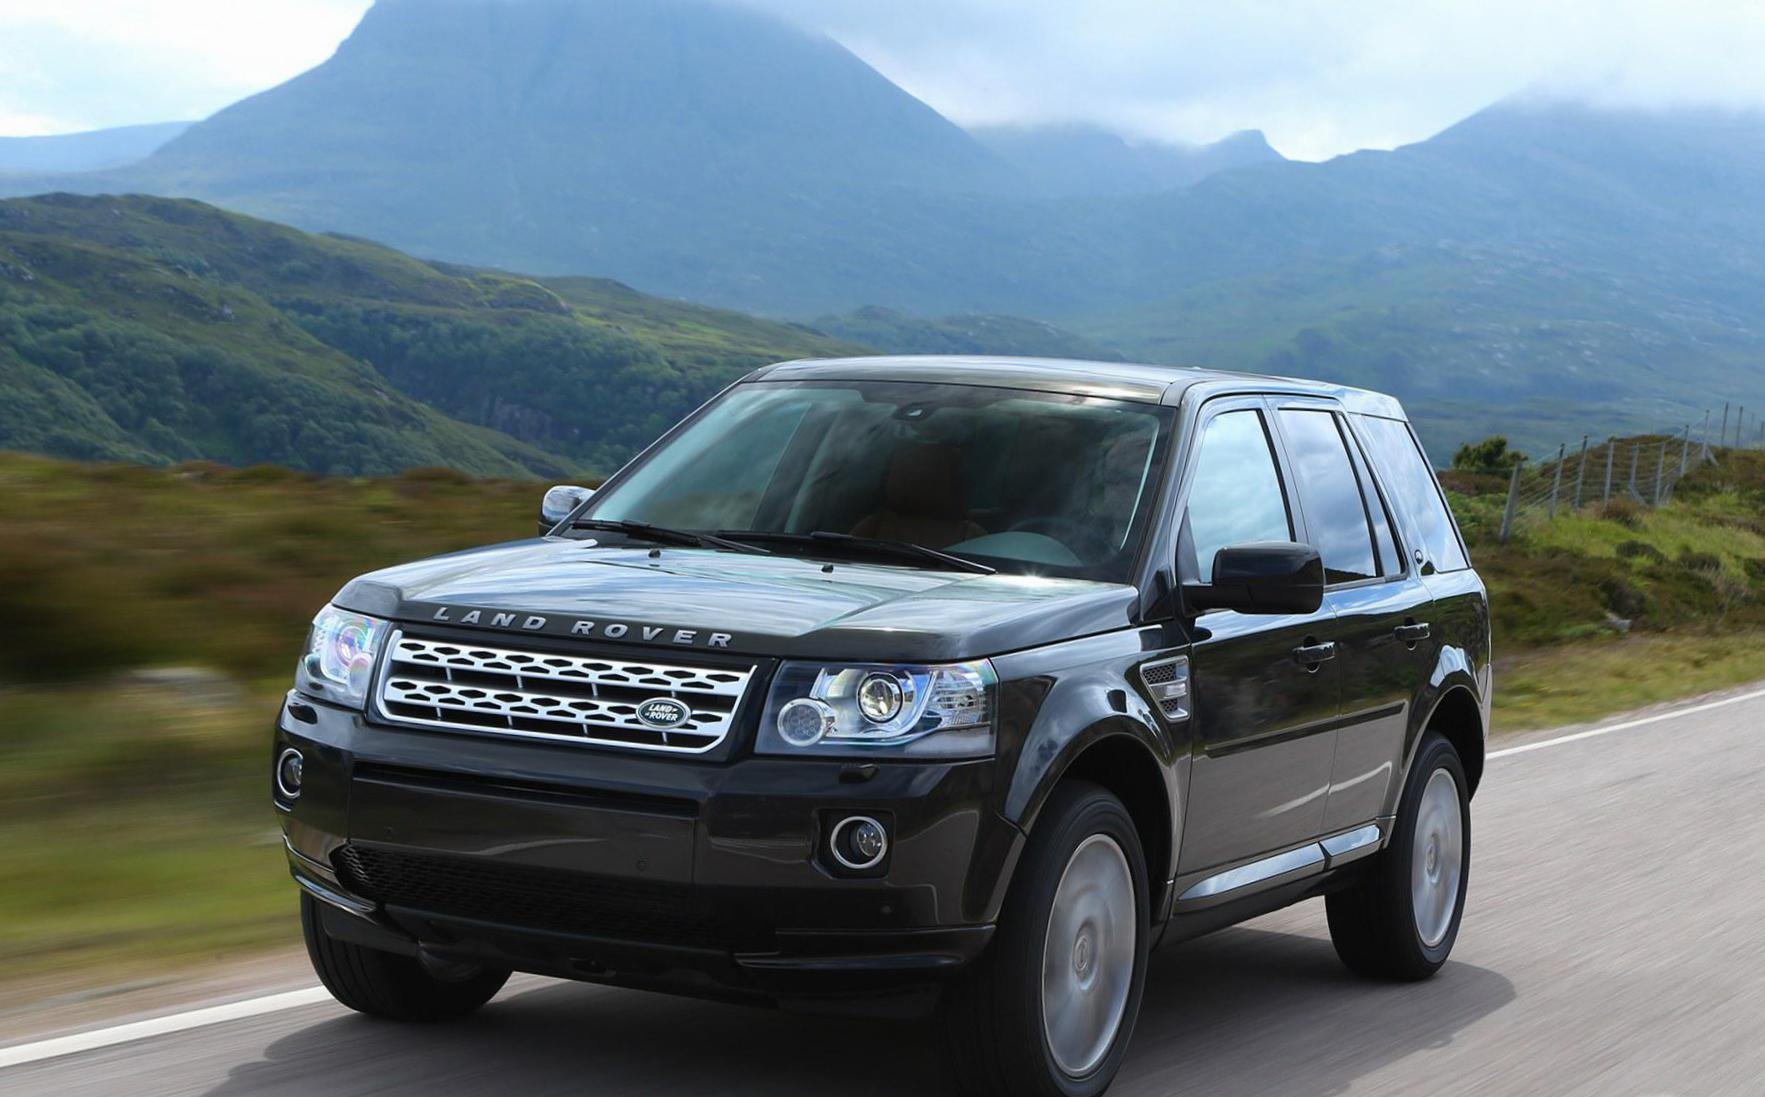 Freelander 2 Land Rover Specification 2013